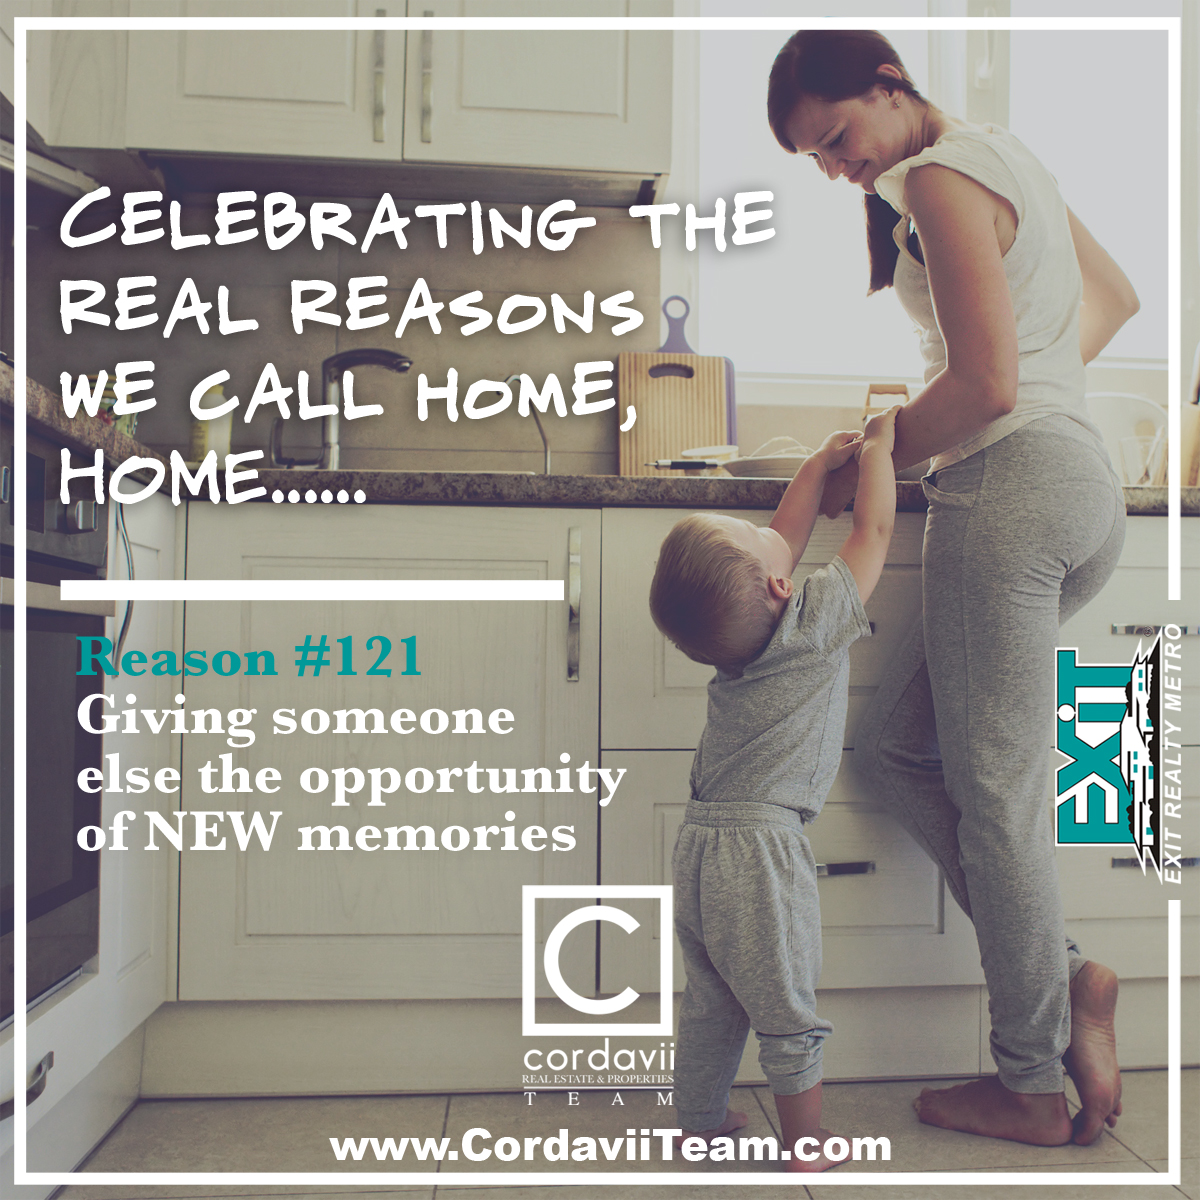 The Cordavii Team: Reason 121 for homeownership: Memories